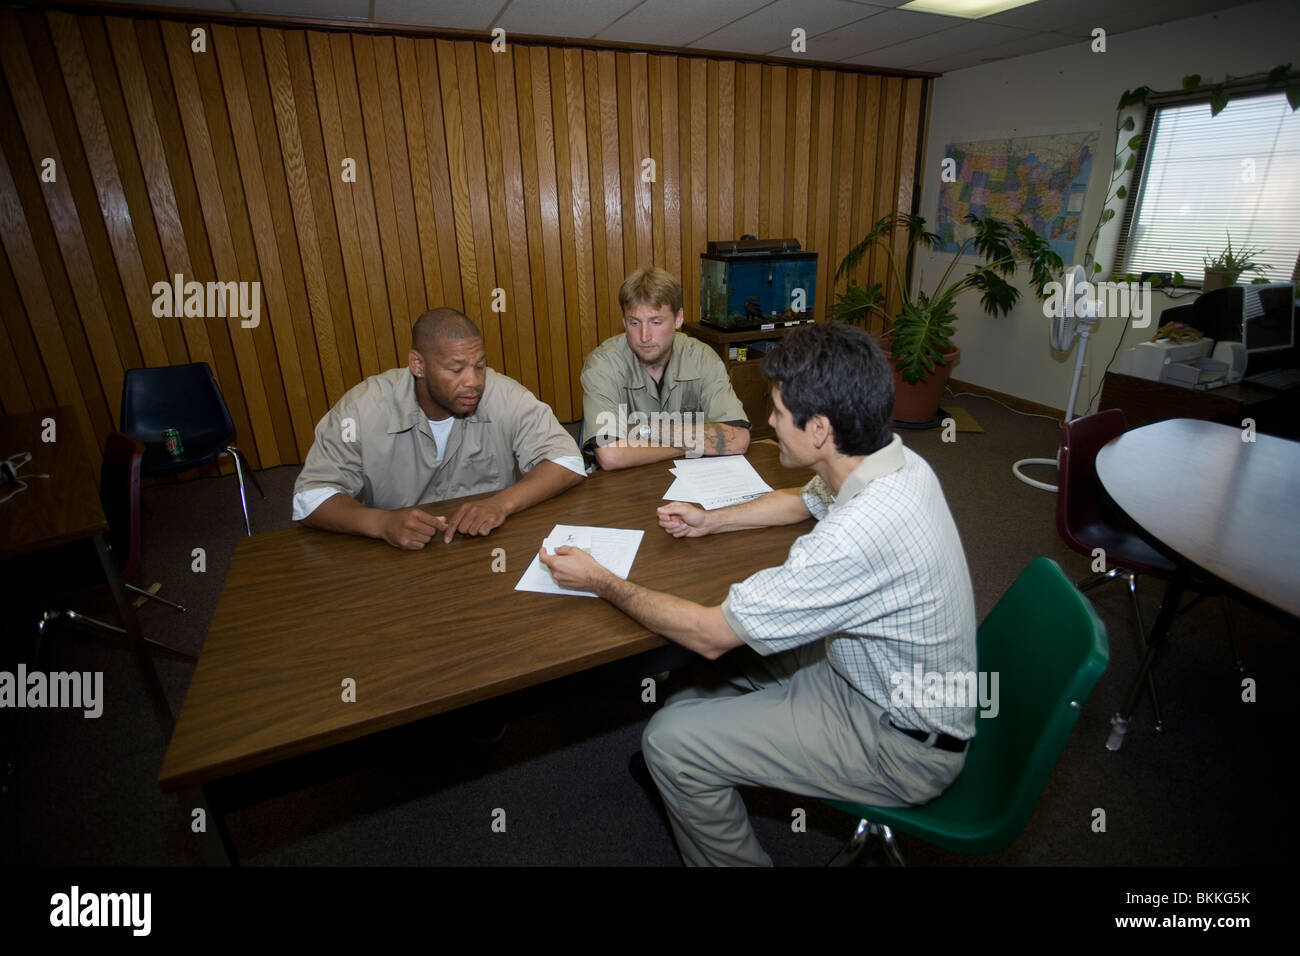 Two inmates talking with teacher. Many inmates desperately need education to have a chance to stay out after release. - Stock Image